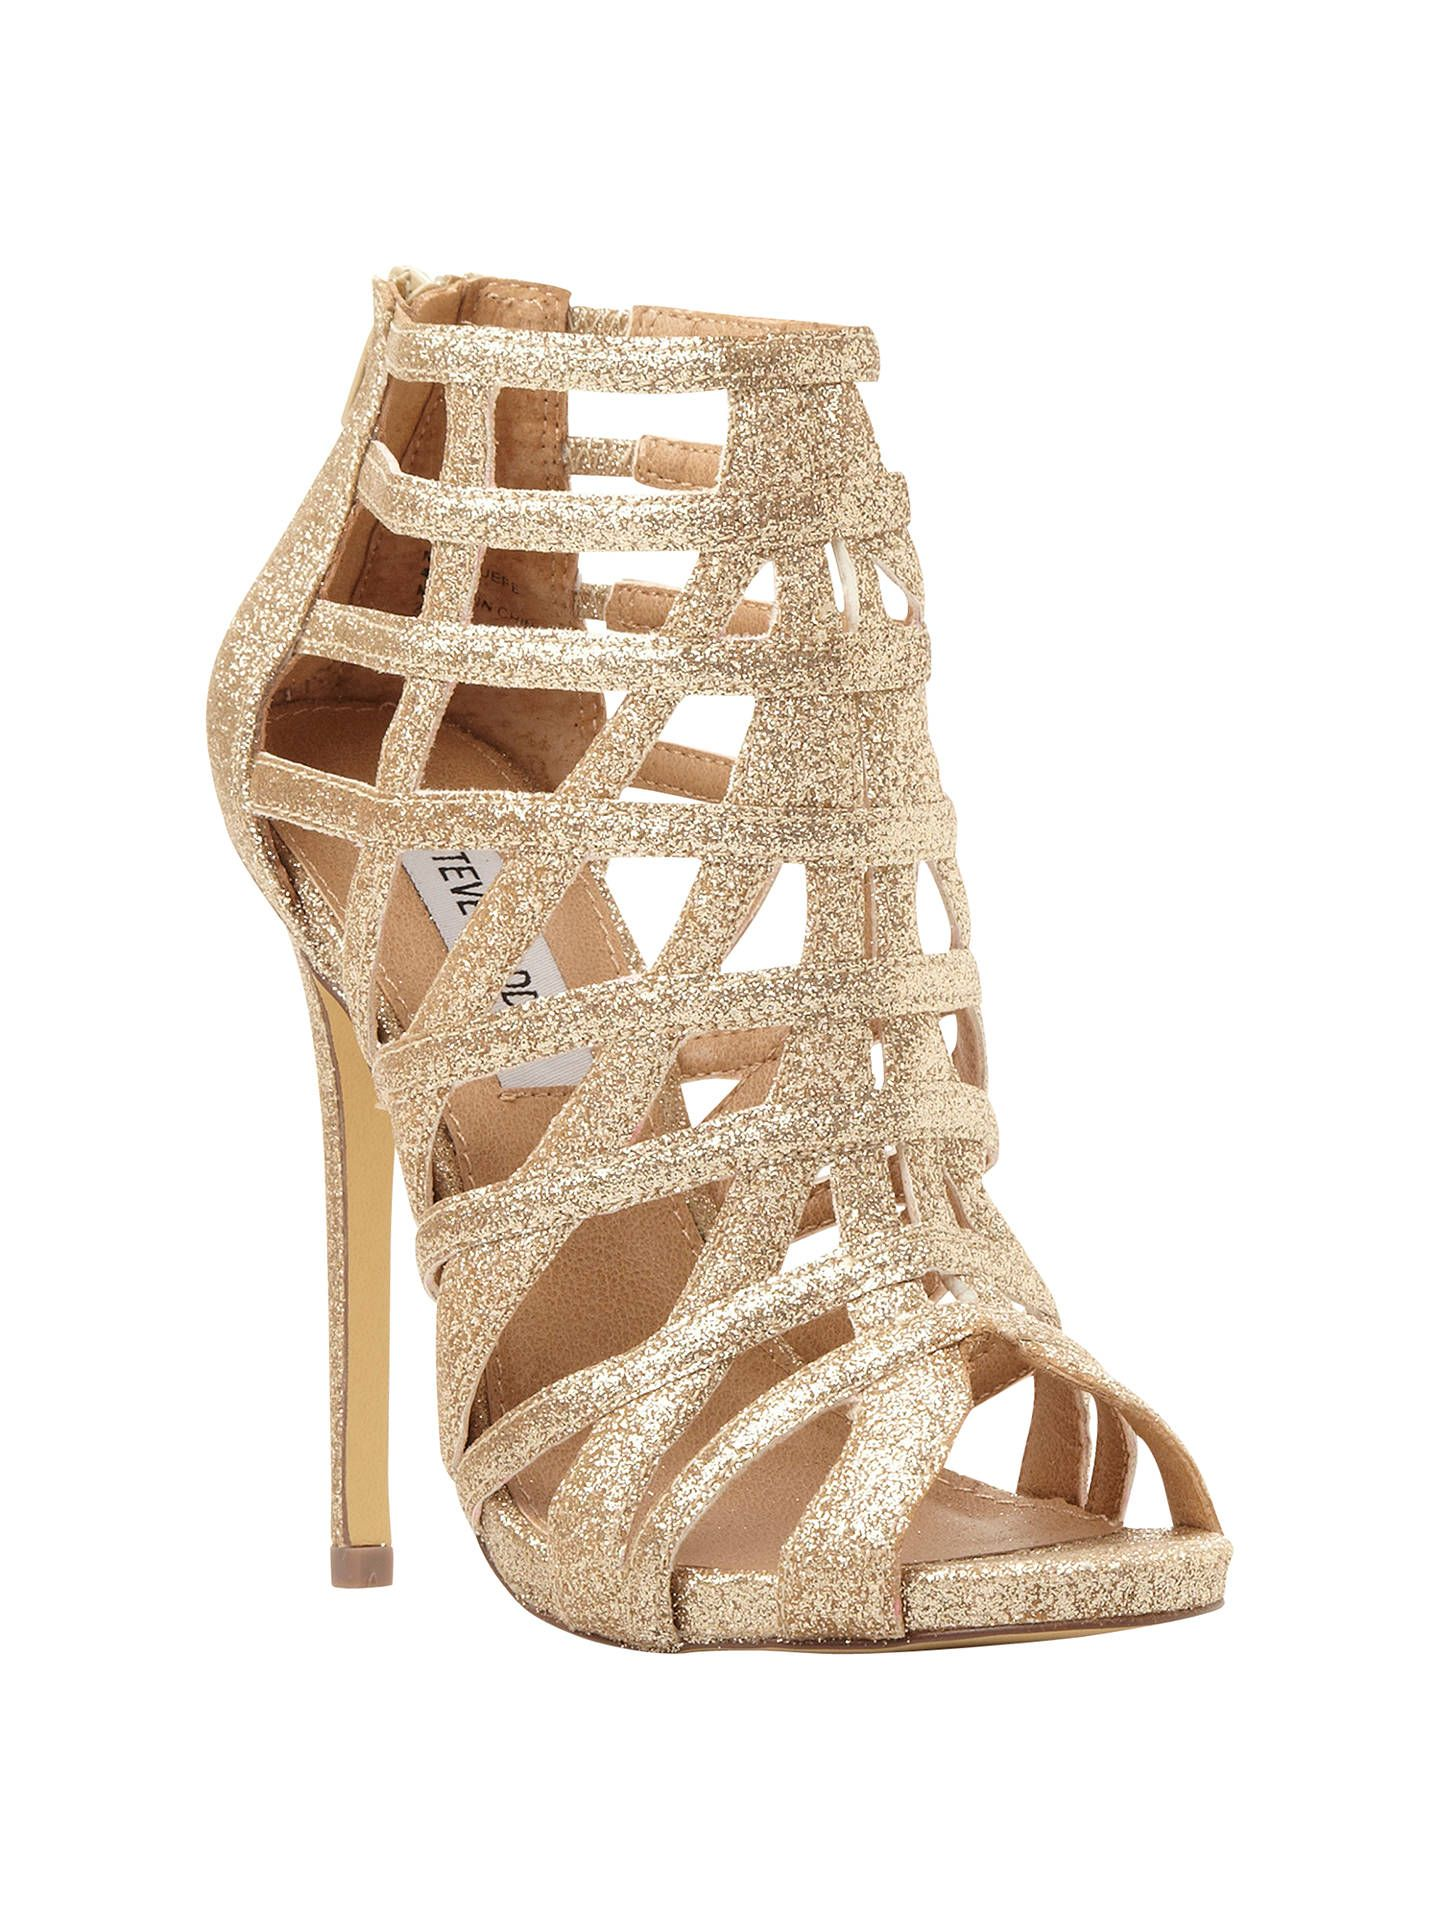 5a322426ac9 Sparkly gold Marquee sandals (Steve Madden)